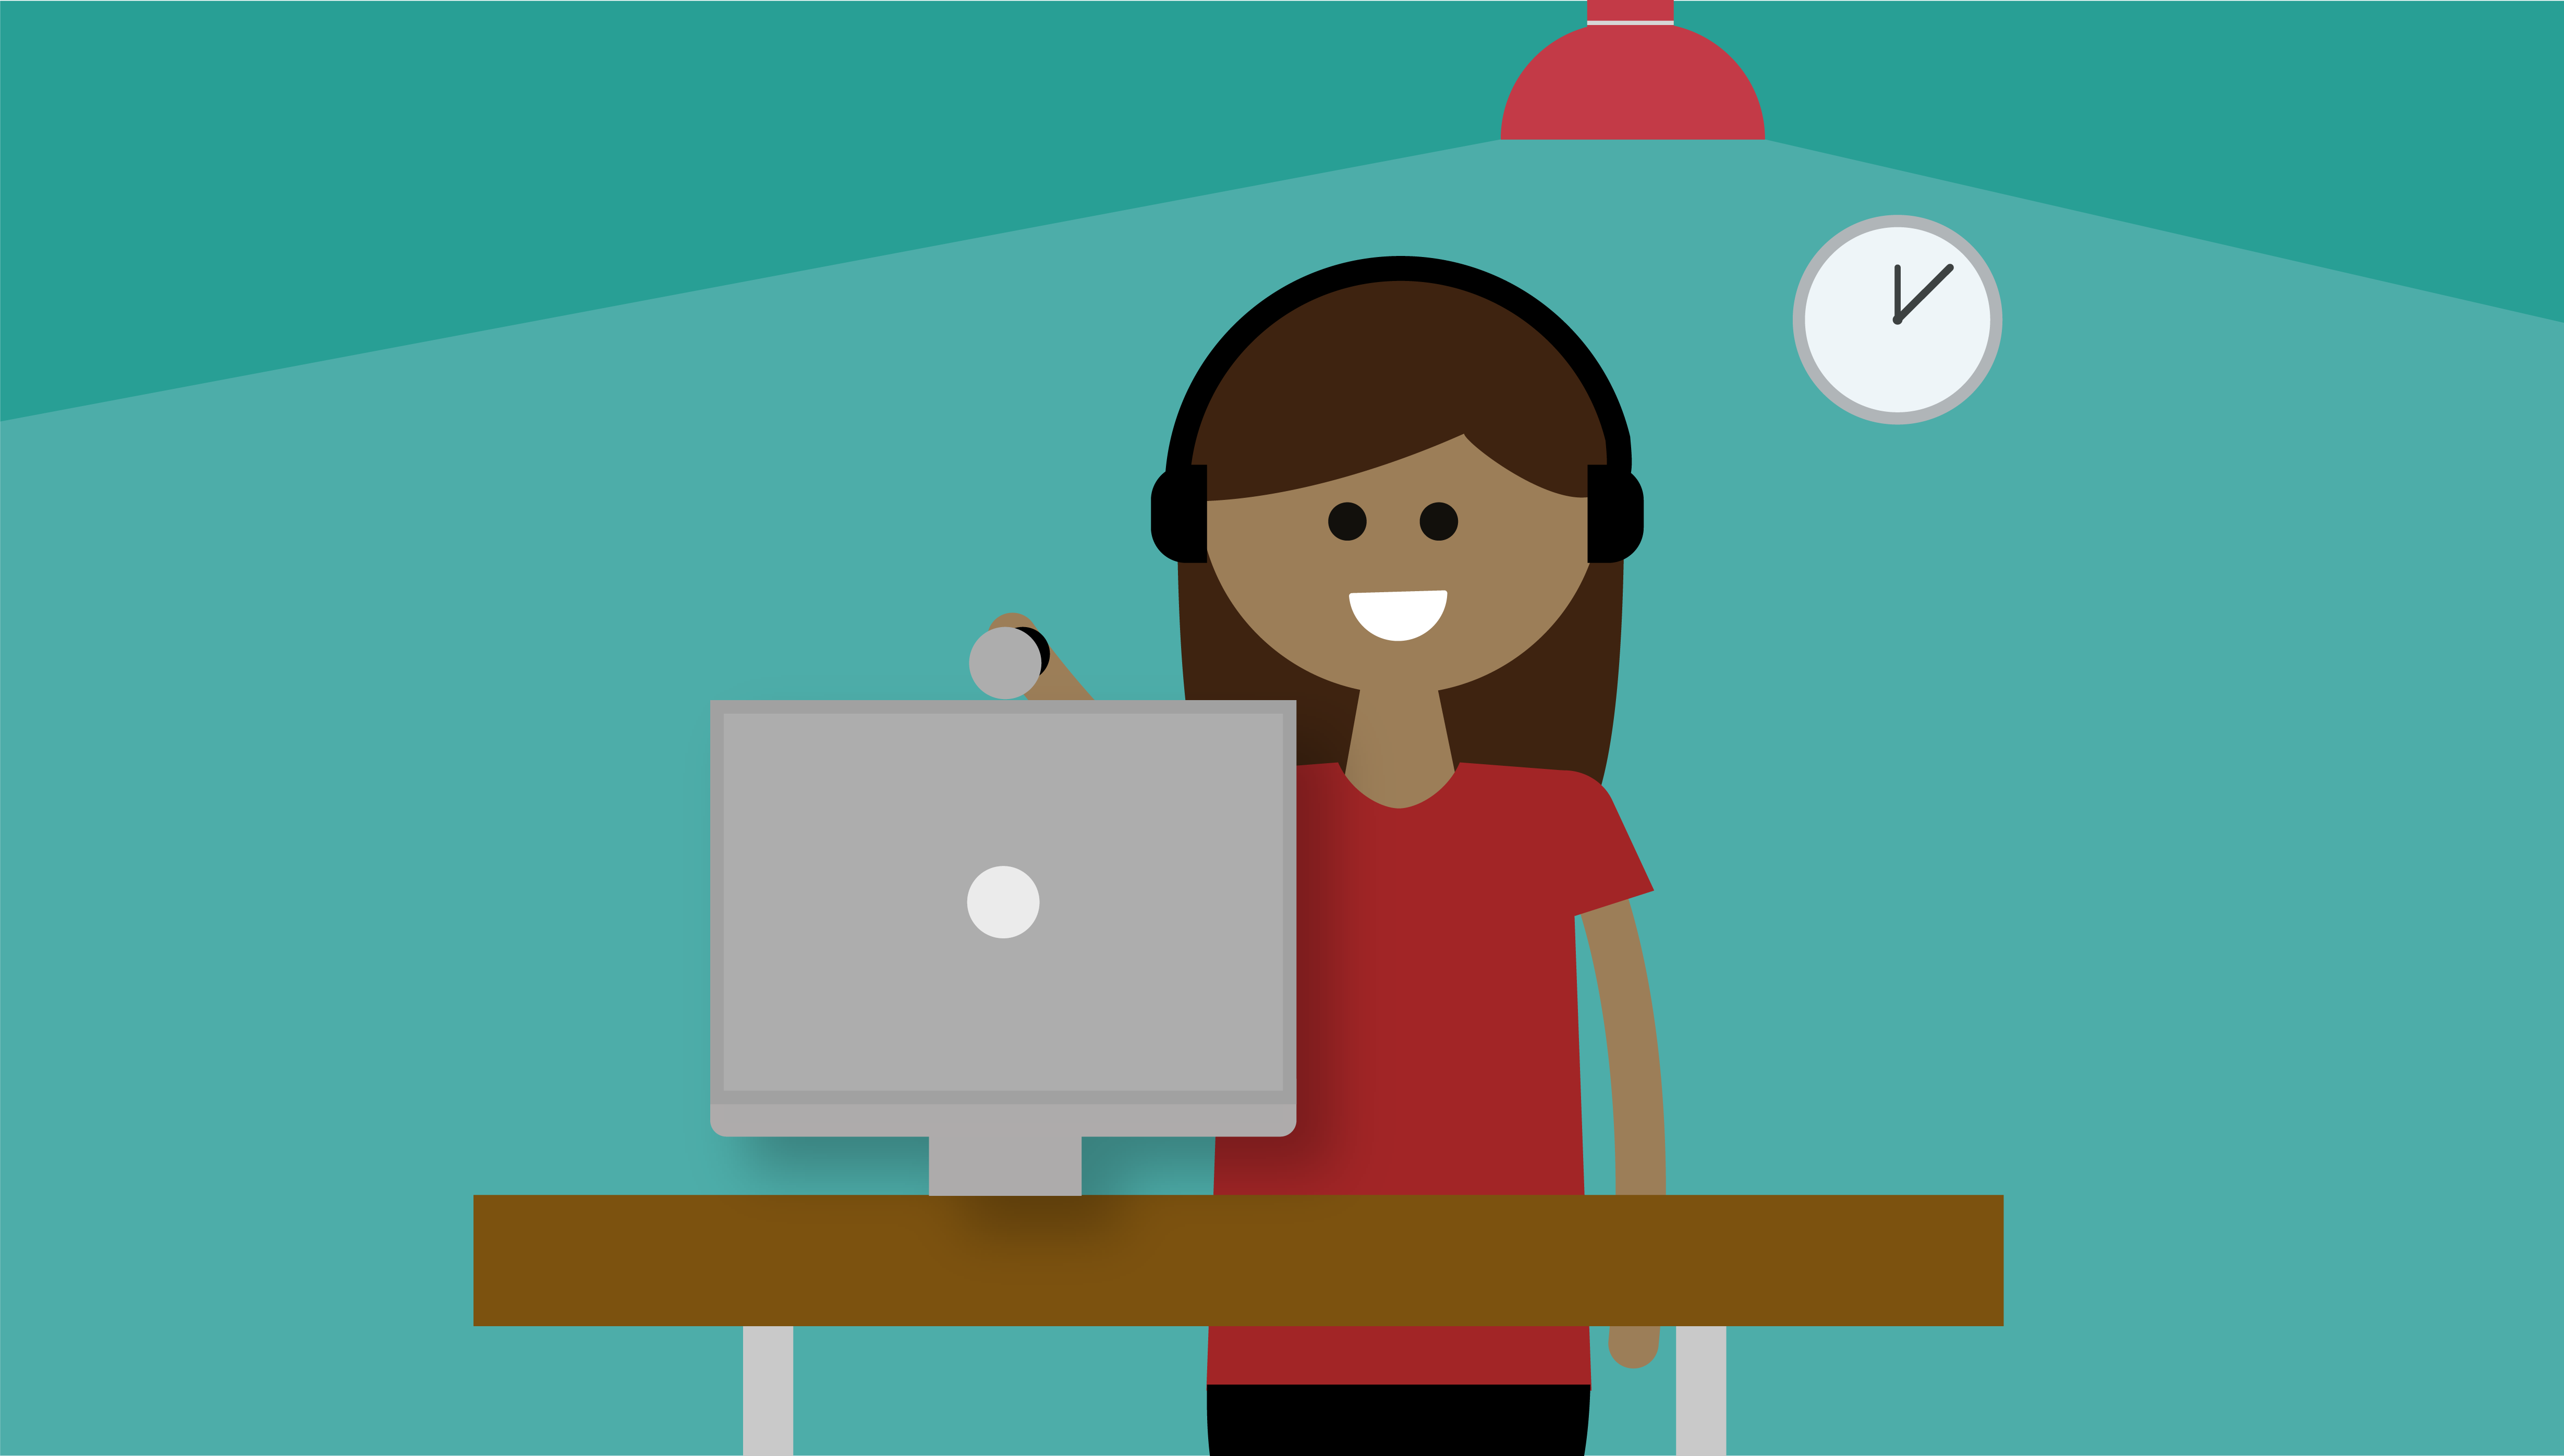 Illustrated graphic of a person smiling into their webcam at a computer desk